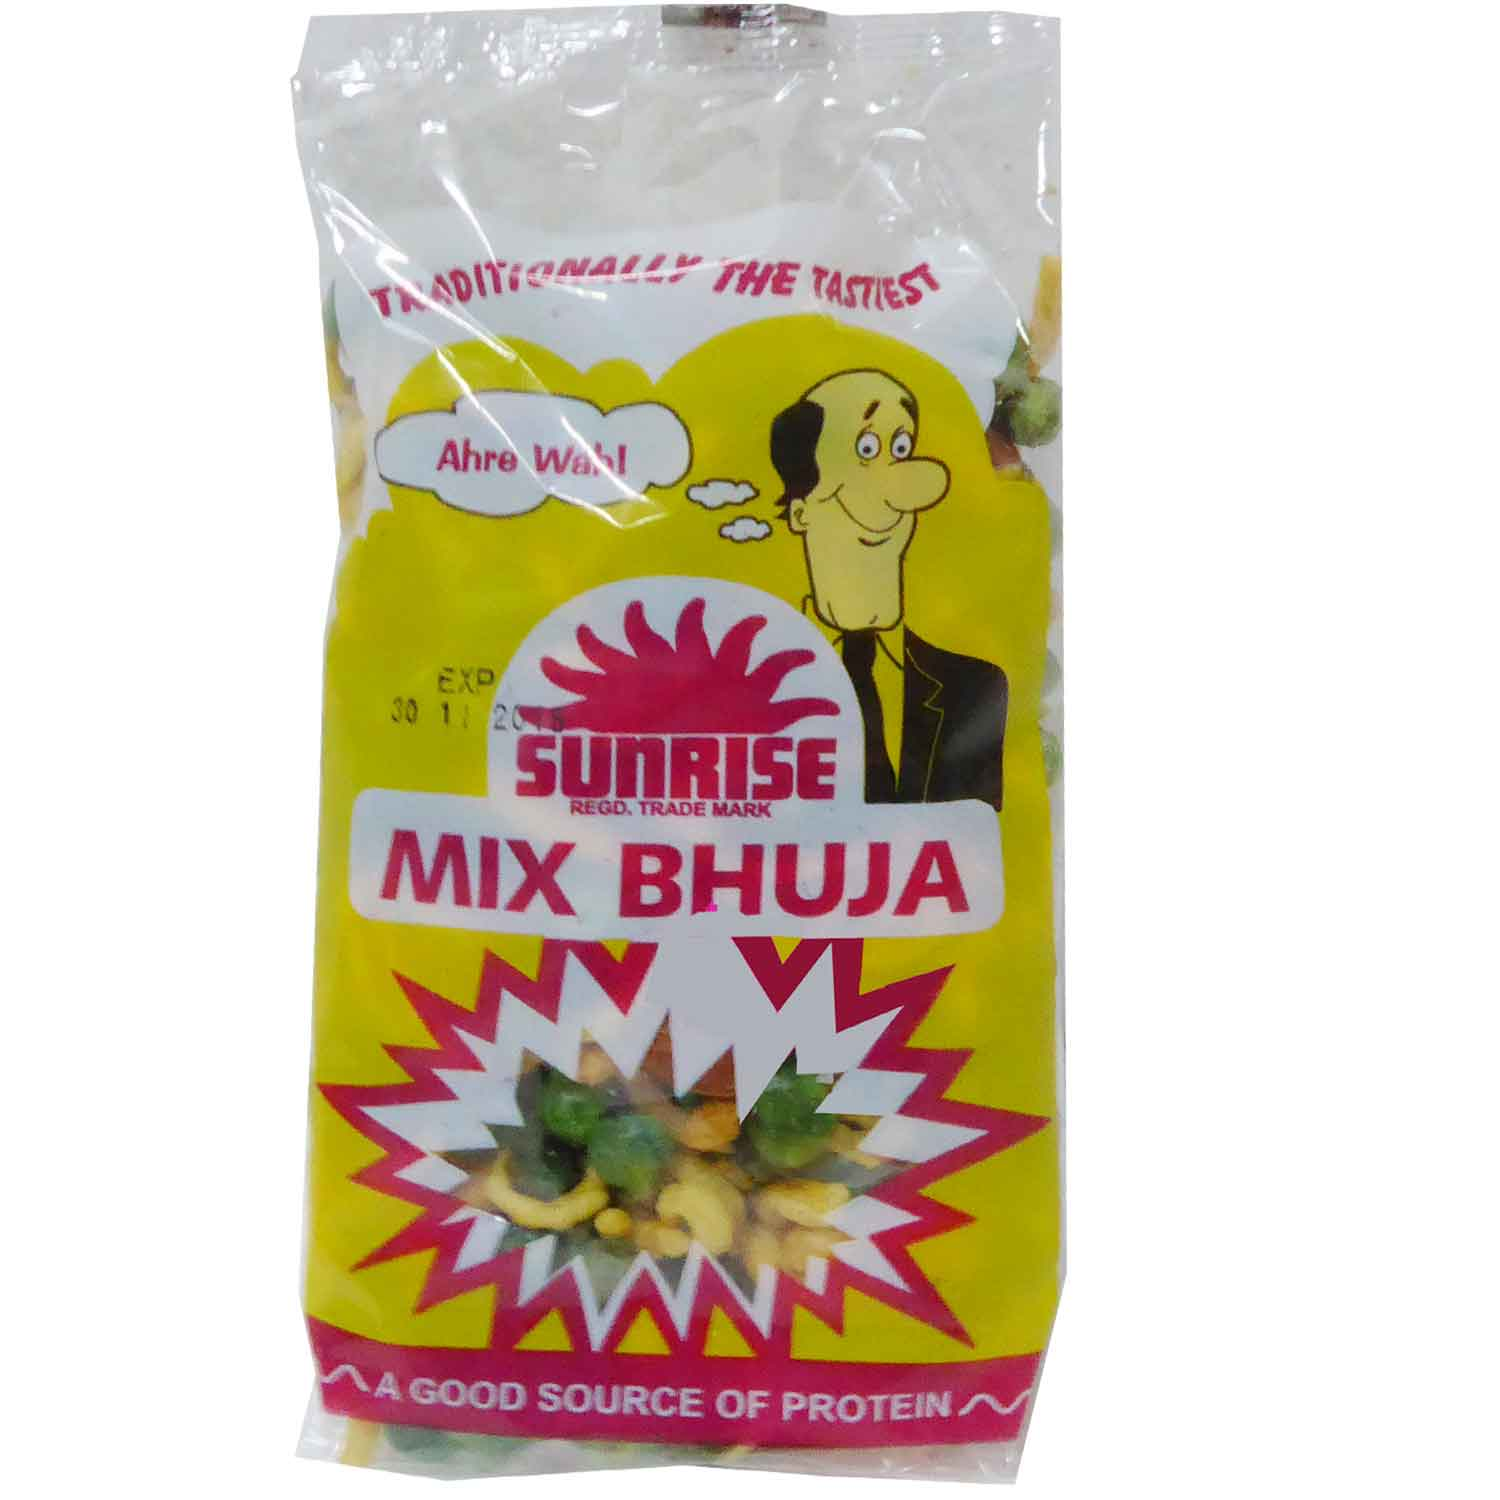 Sunrise Mixed Bhuja 120g